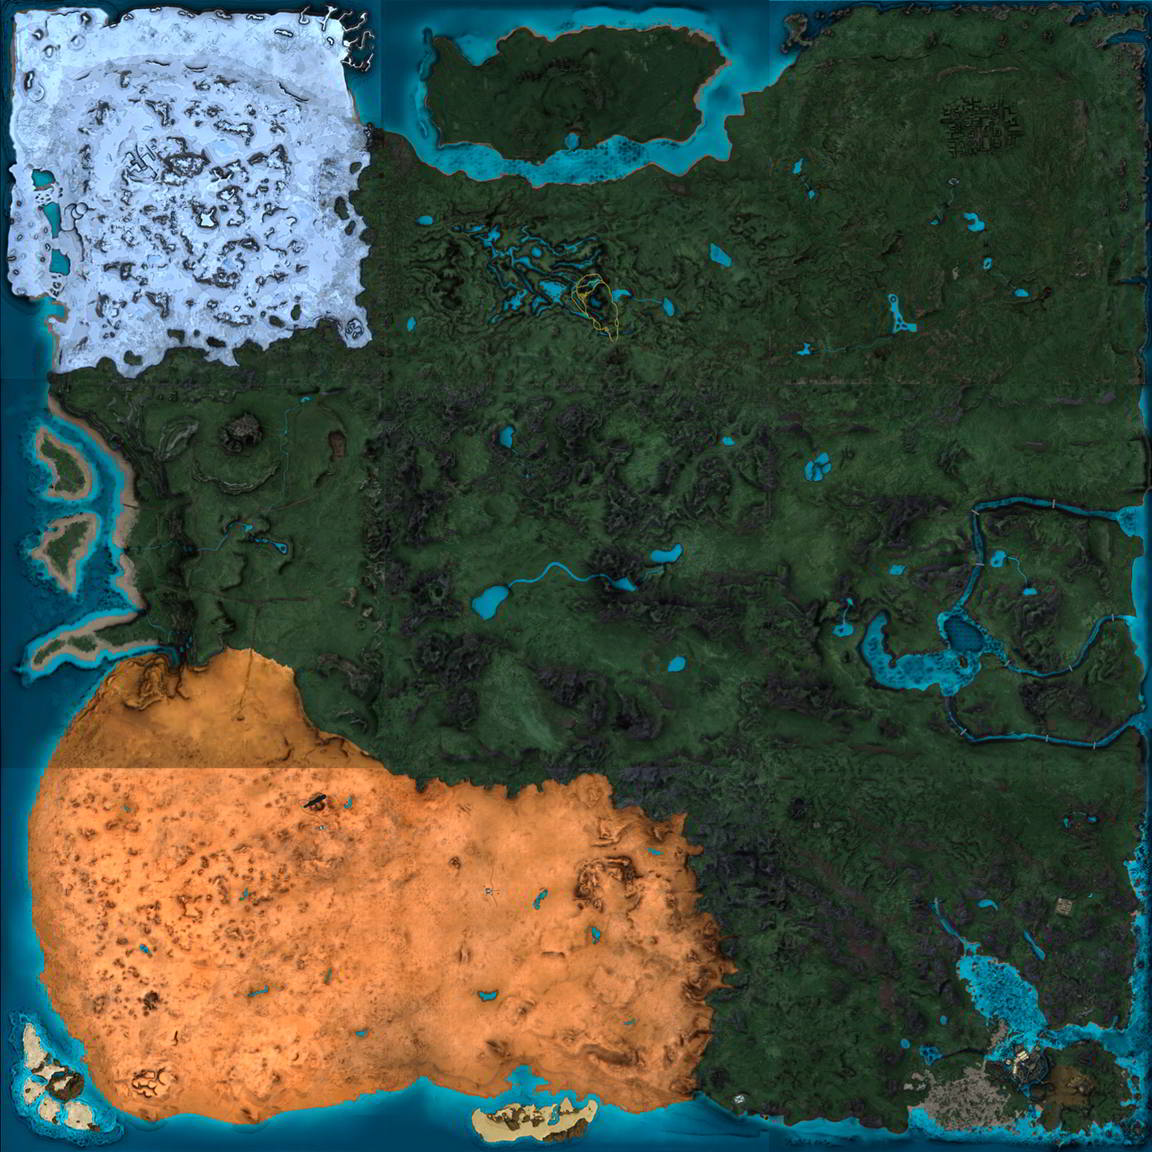 Arkadia map empty 1152x1152.jpg